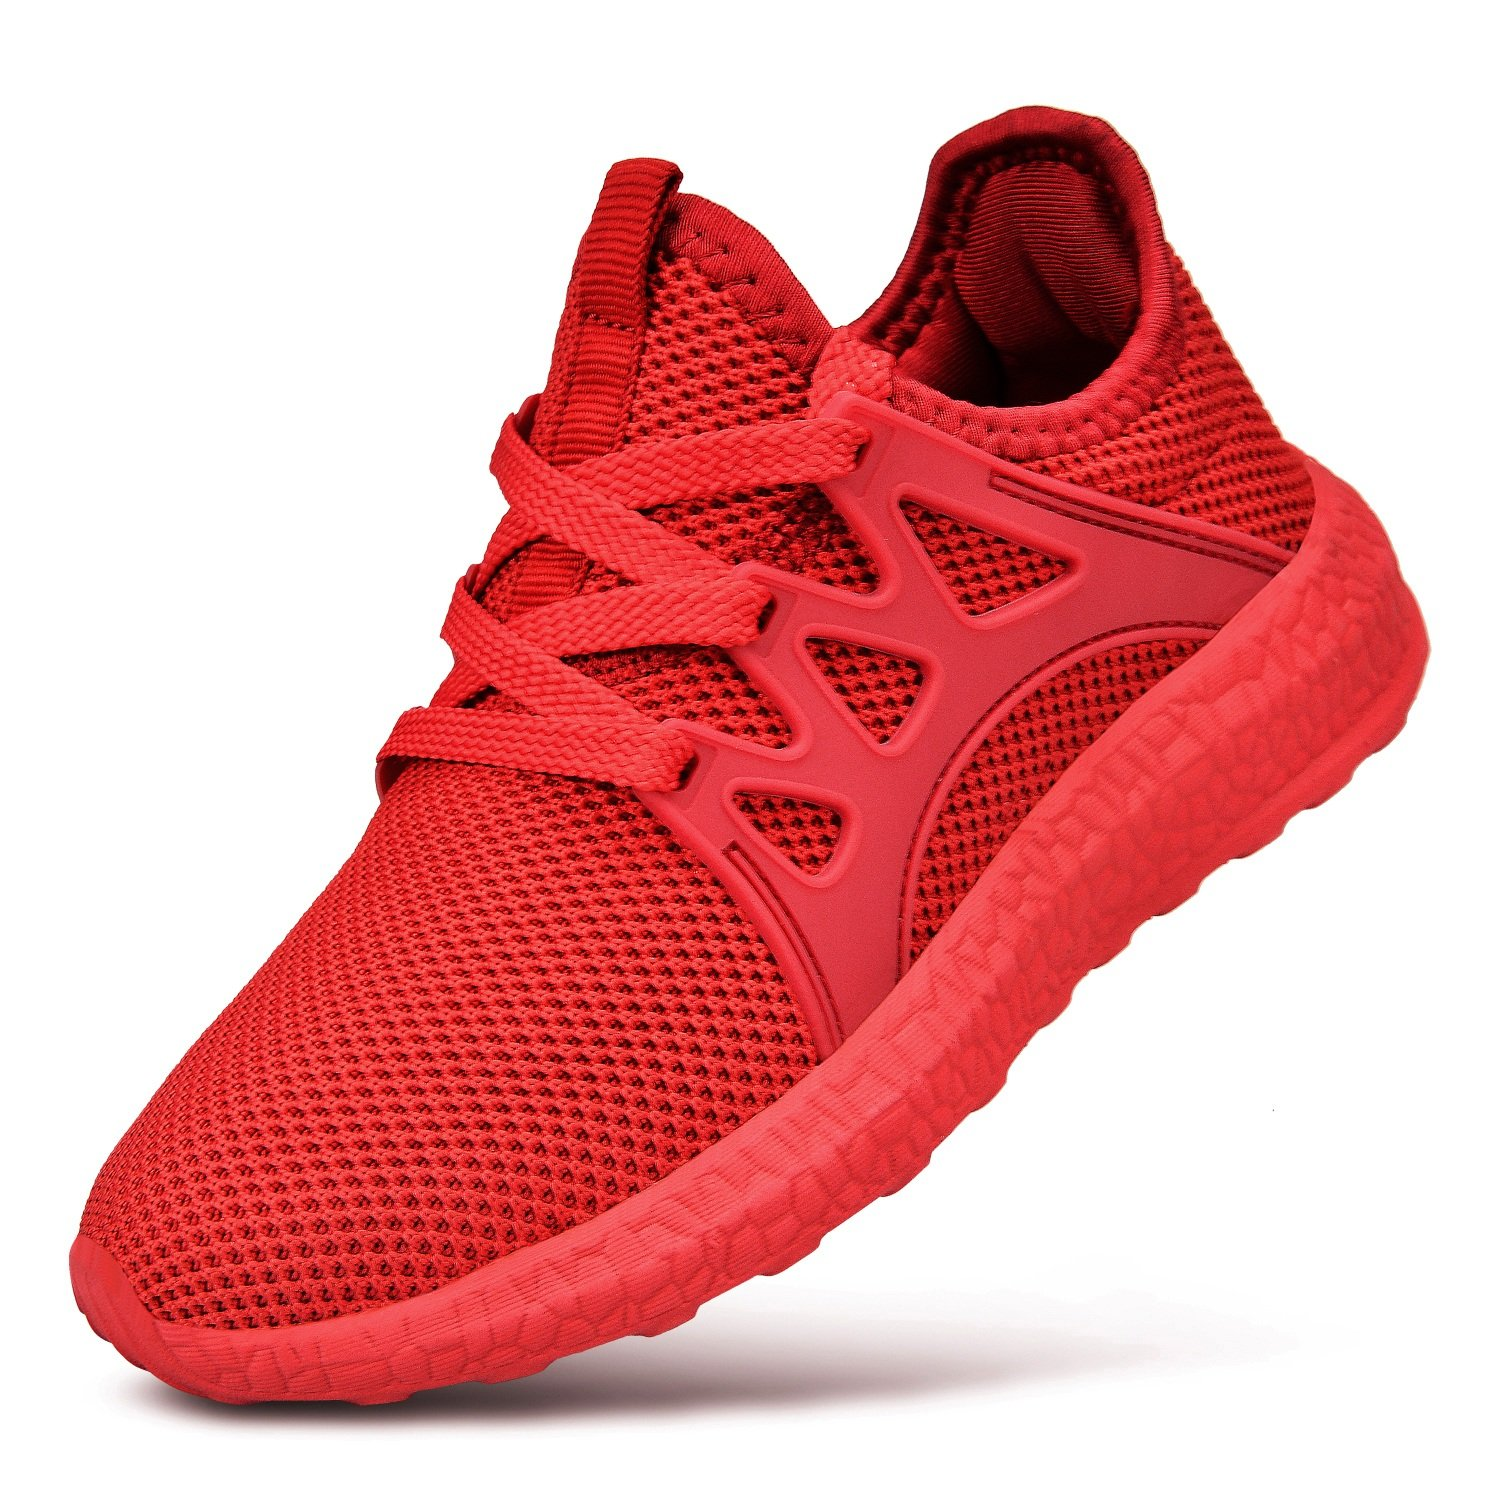 QANSI Child Kids Fashion Sneakers Ultra Lightweight Breathable Athletic Running Walking Tennis Shoes for Girls Boys F036@#Child